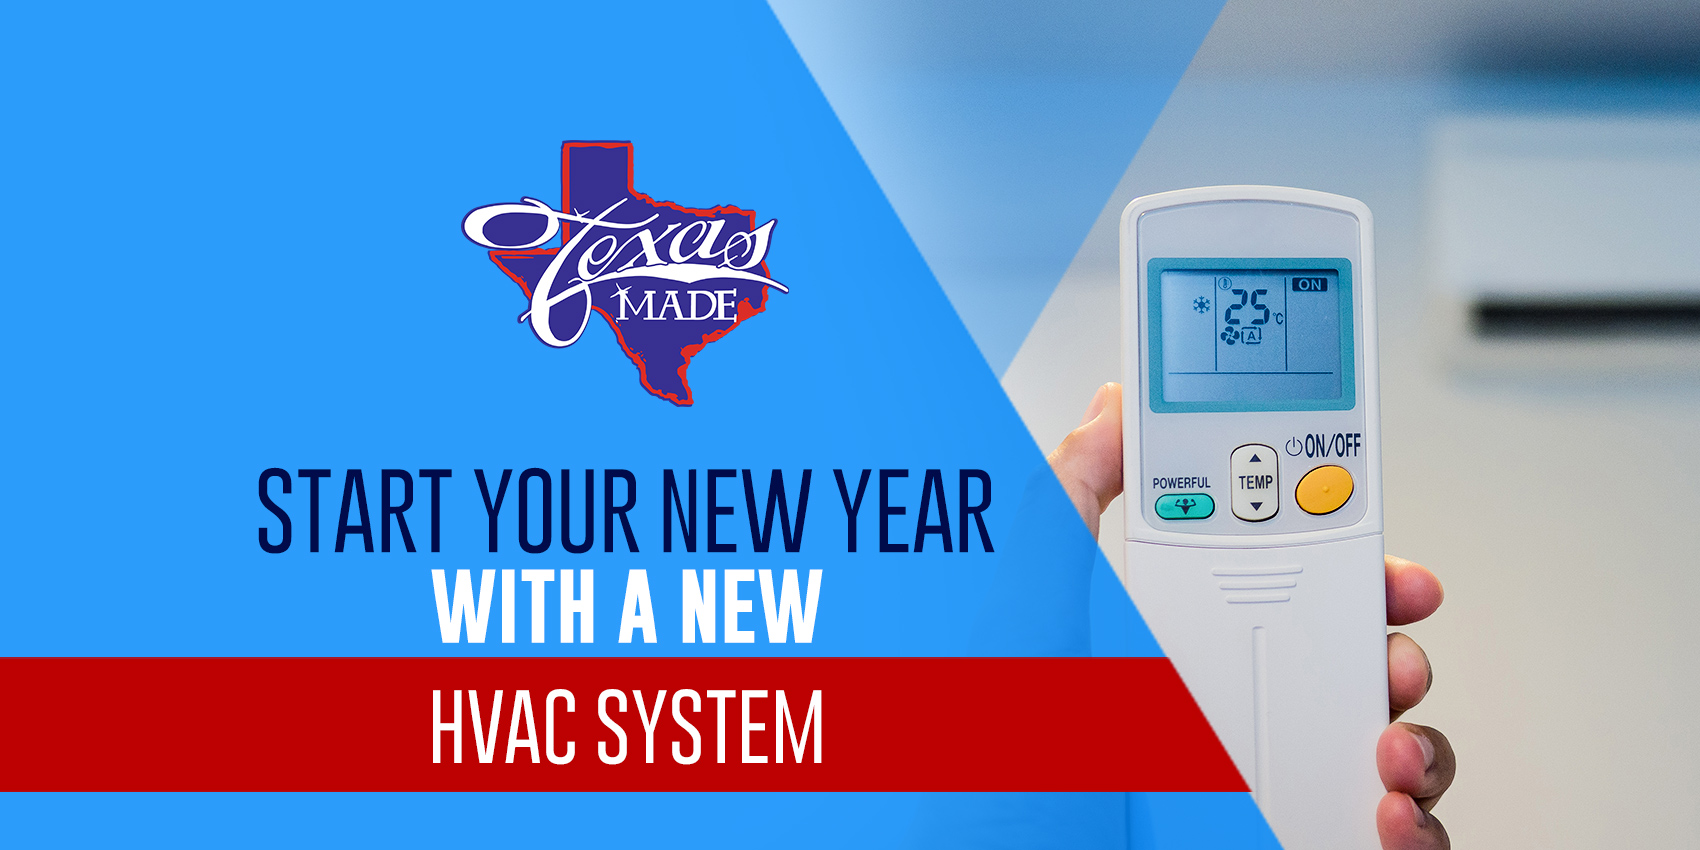 Start Your New Year with a New HVAC System